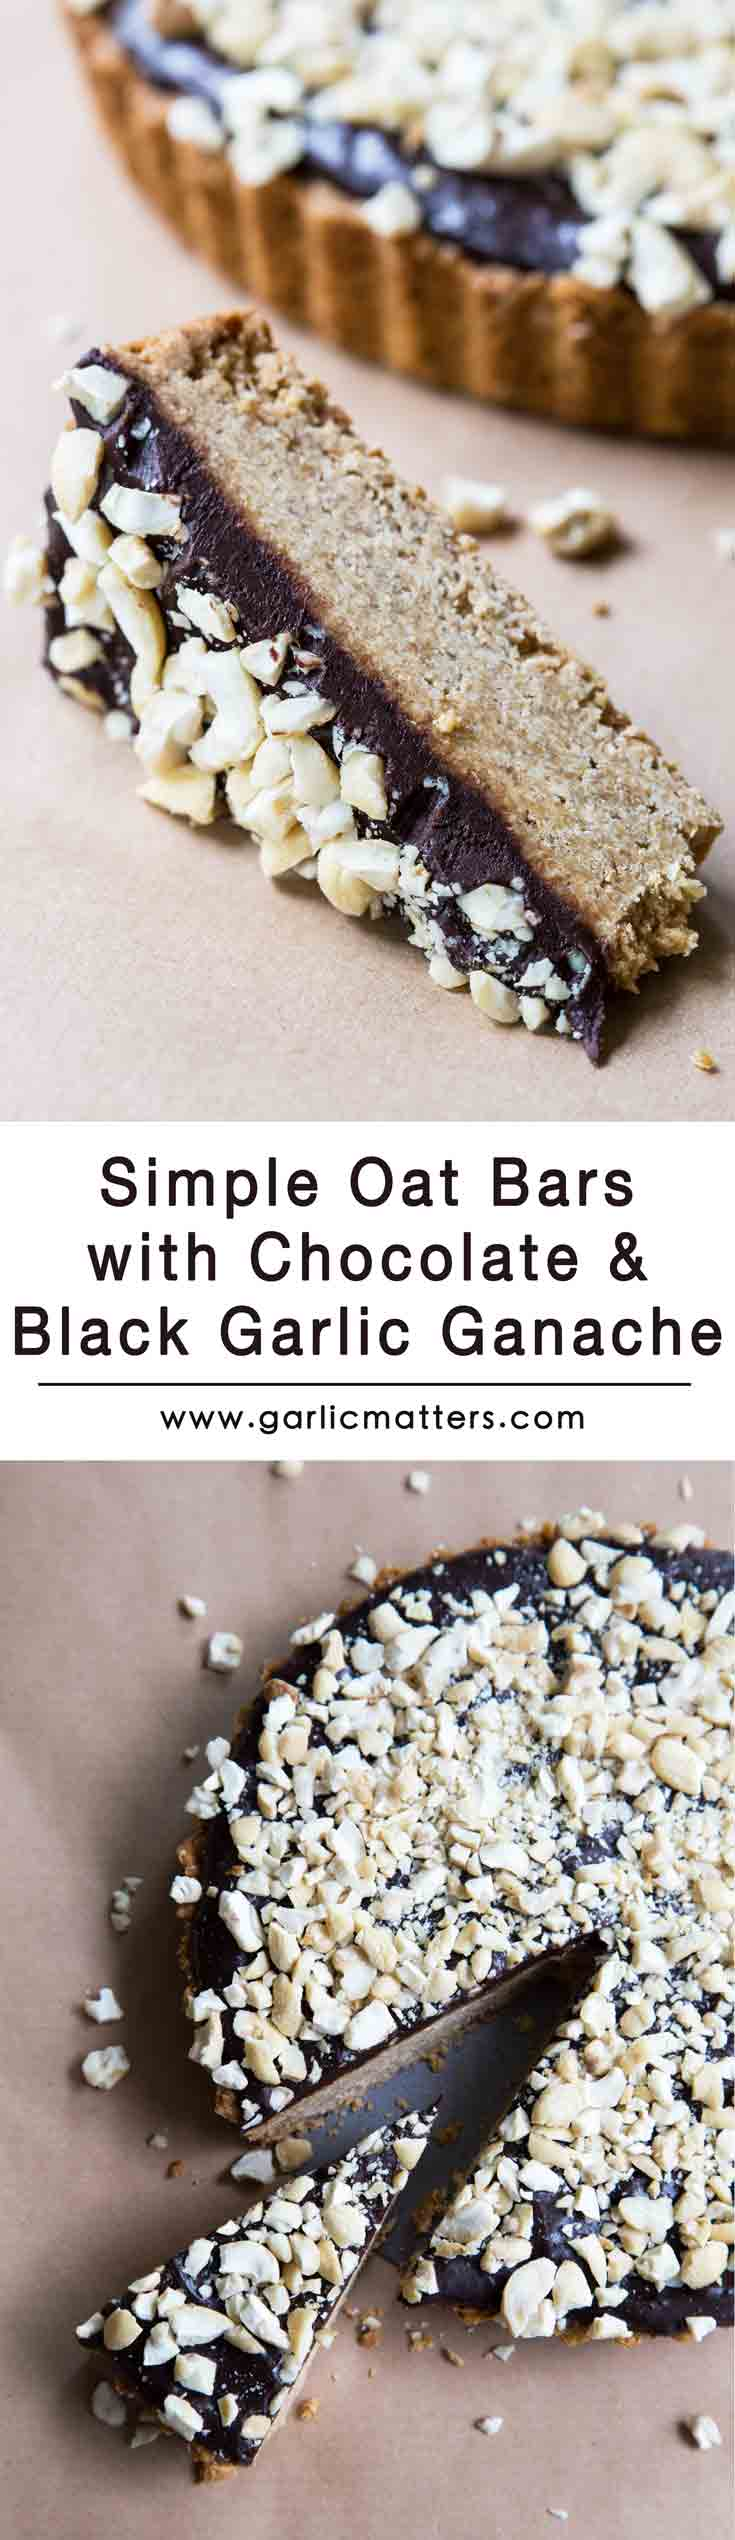 Simple Oat Bars with Chocolate and Black Garlic Ganache tick pretty much all boxes of a perfect snack to go for breakfast or with a cup of coffee. This is a great energy booster topped up with my latest favourite: delicious chocolate and sweet black garlic ganache. So good!